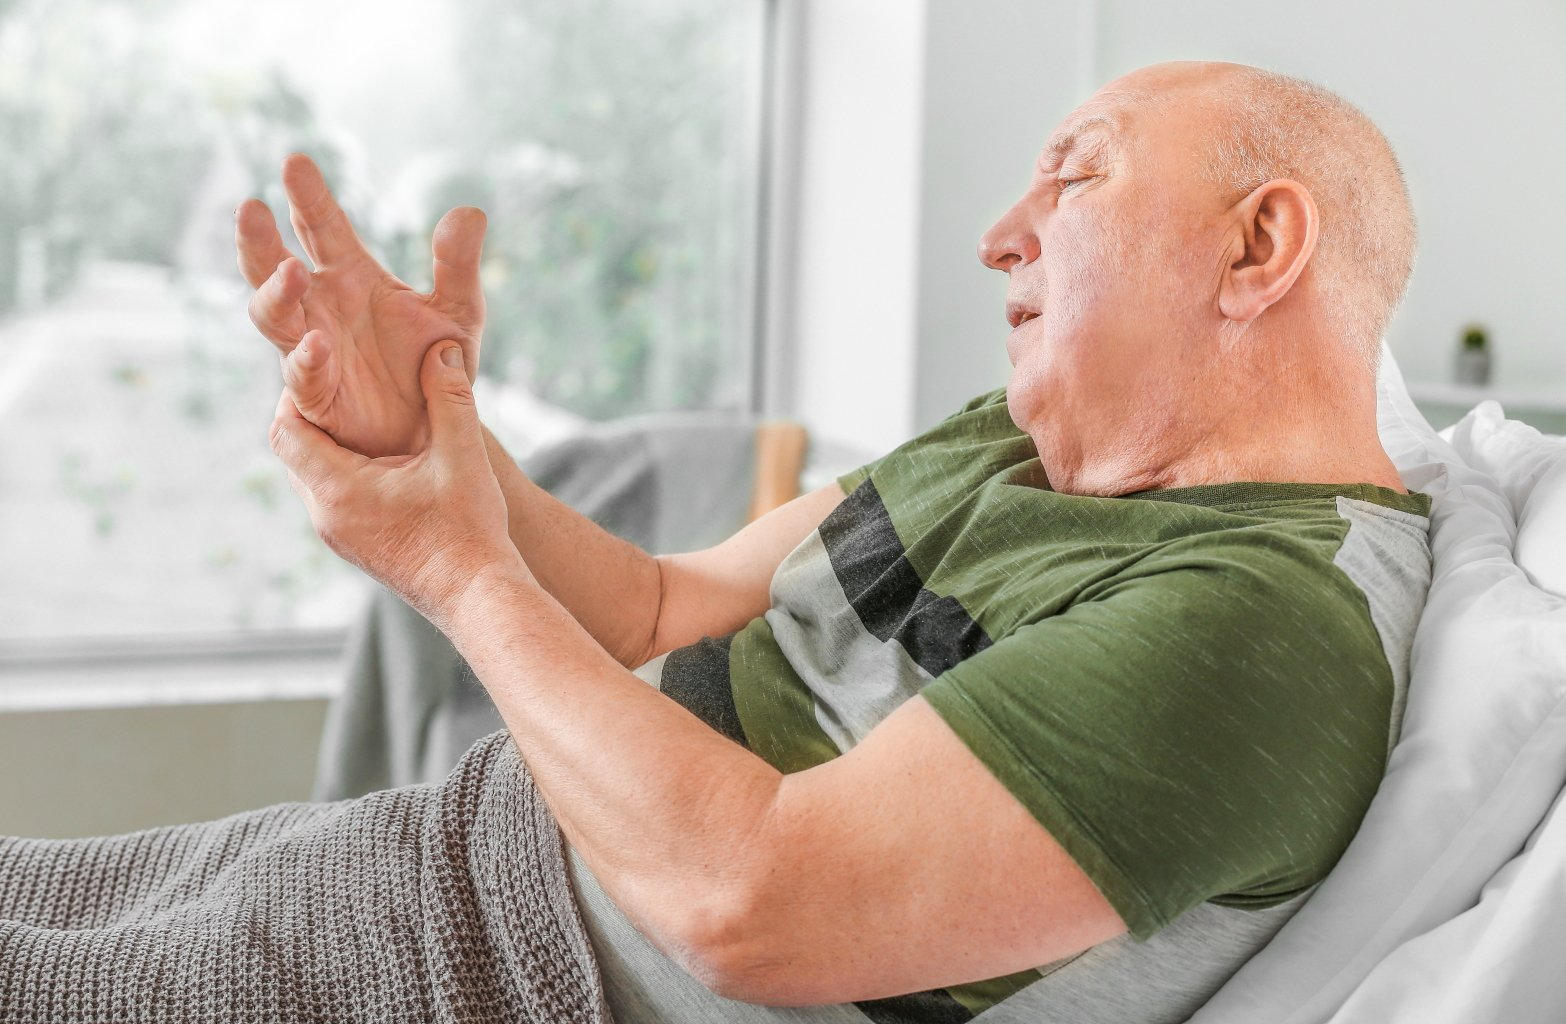 Antioxidants Vitamin C and Vitamin E Linked to Lower Risk of Parkinson's